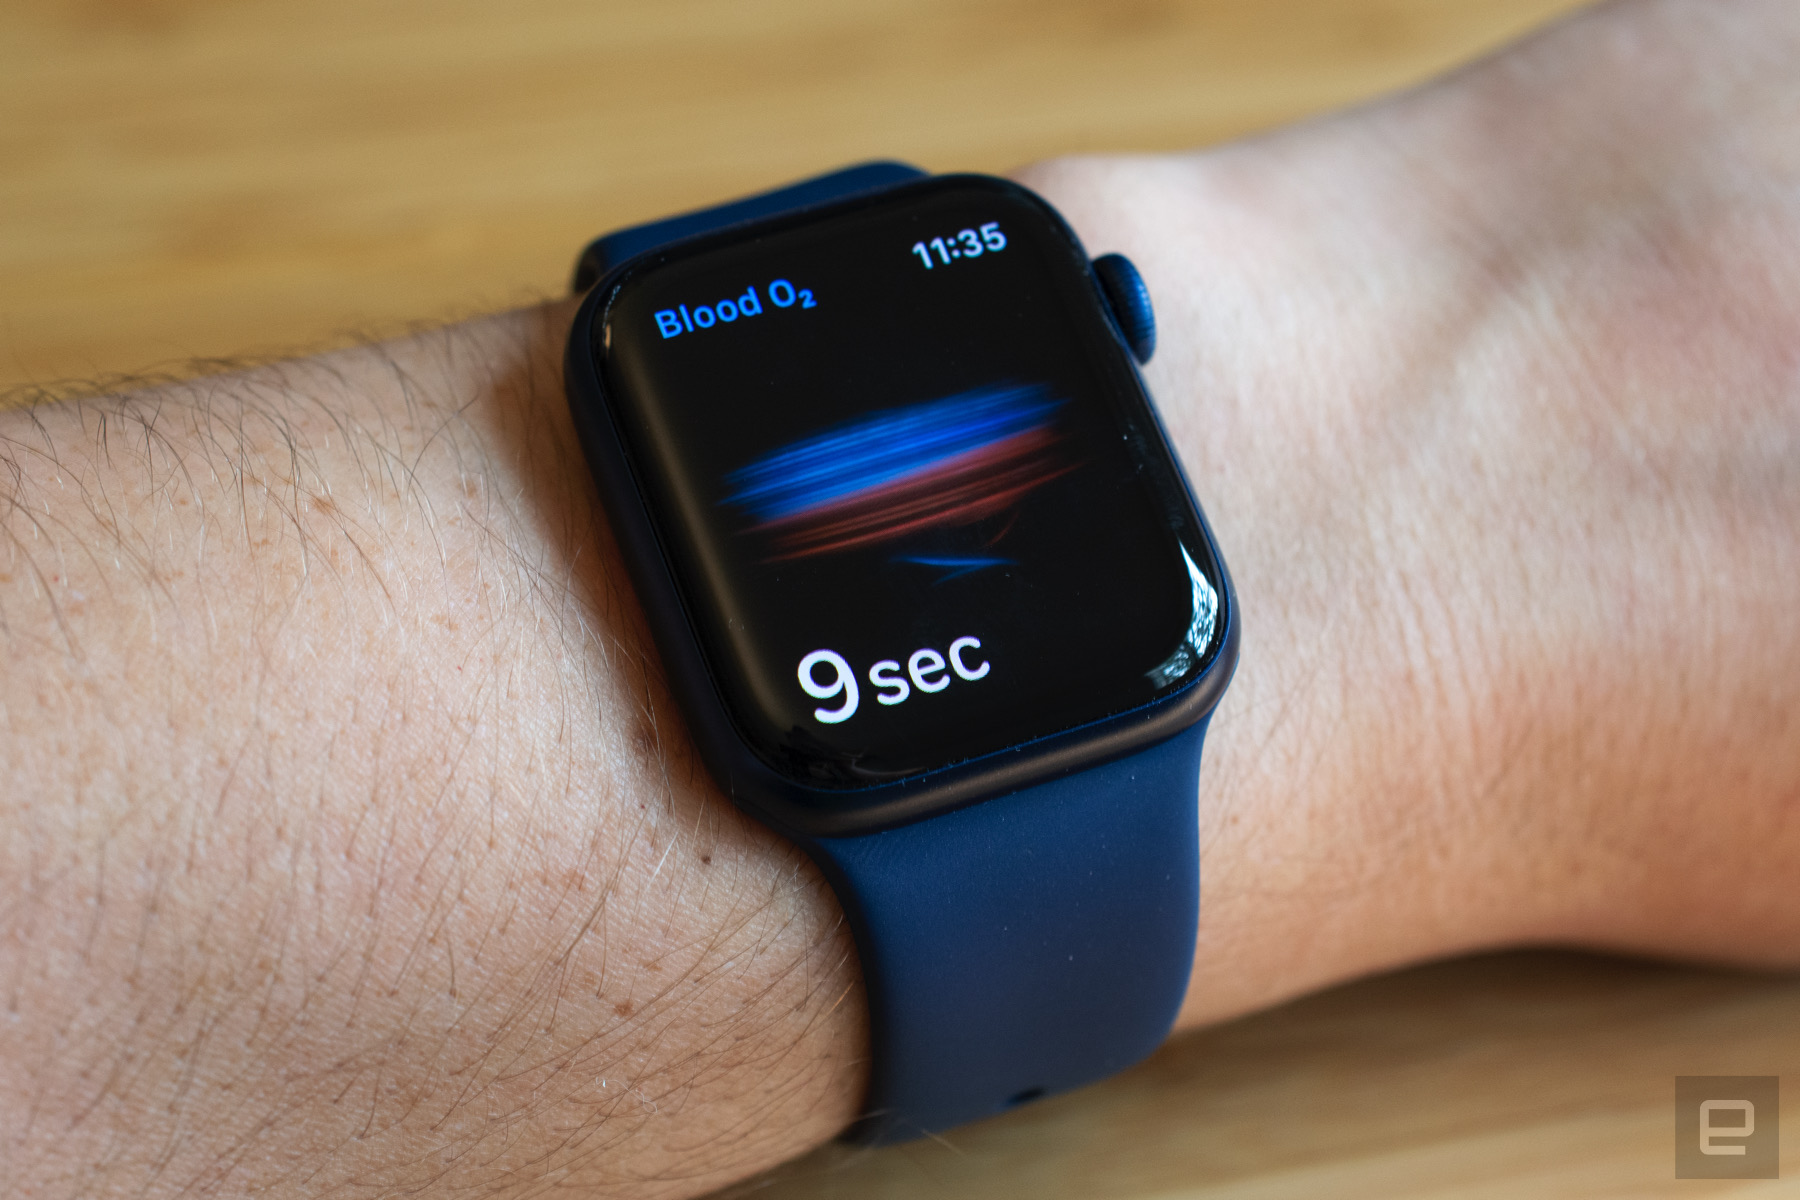 Apple begins studying whether the Watch can predict COVID-19 | Engadget